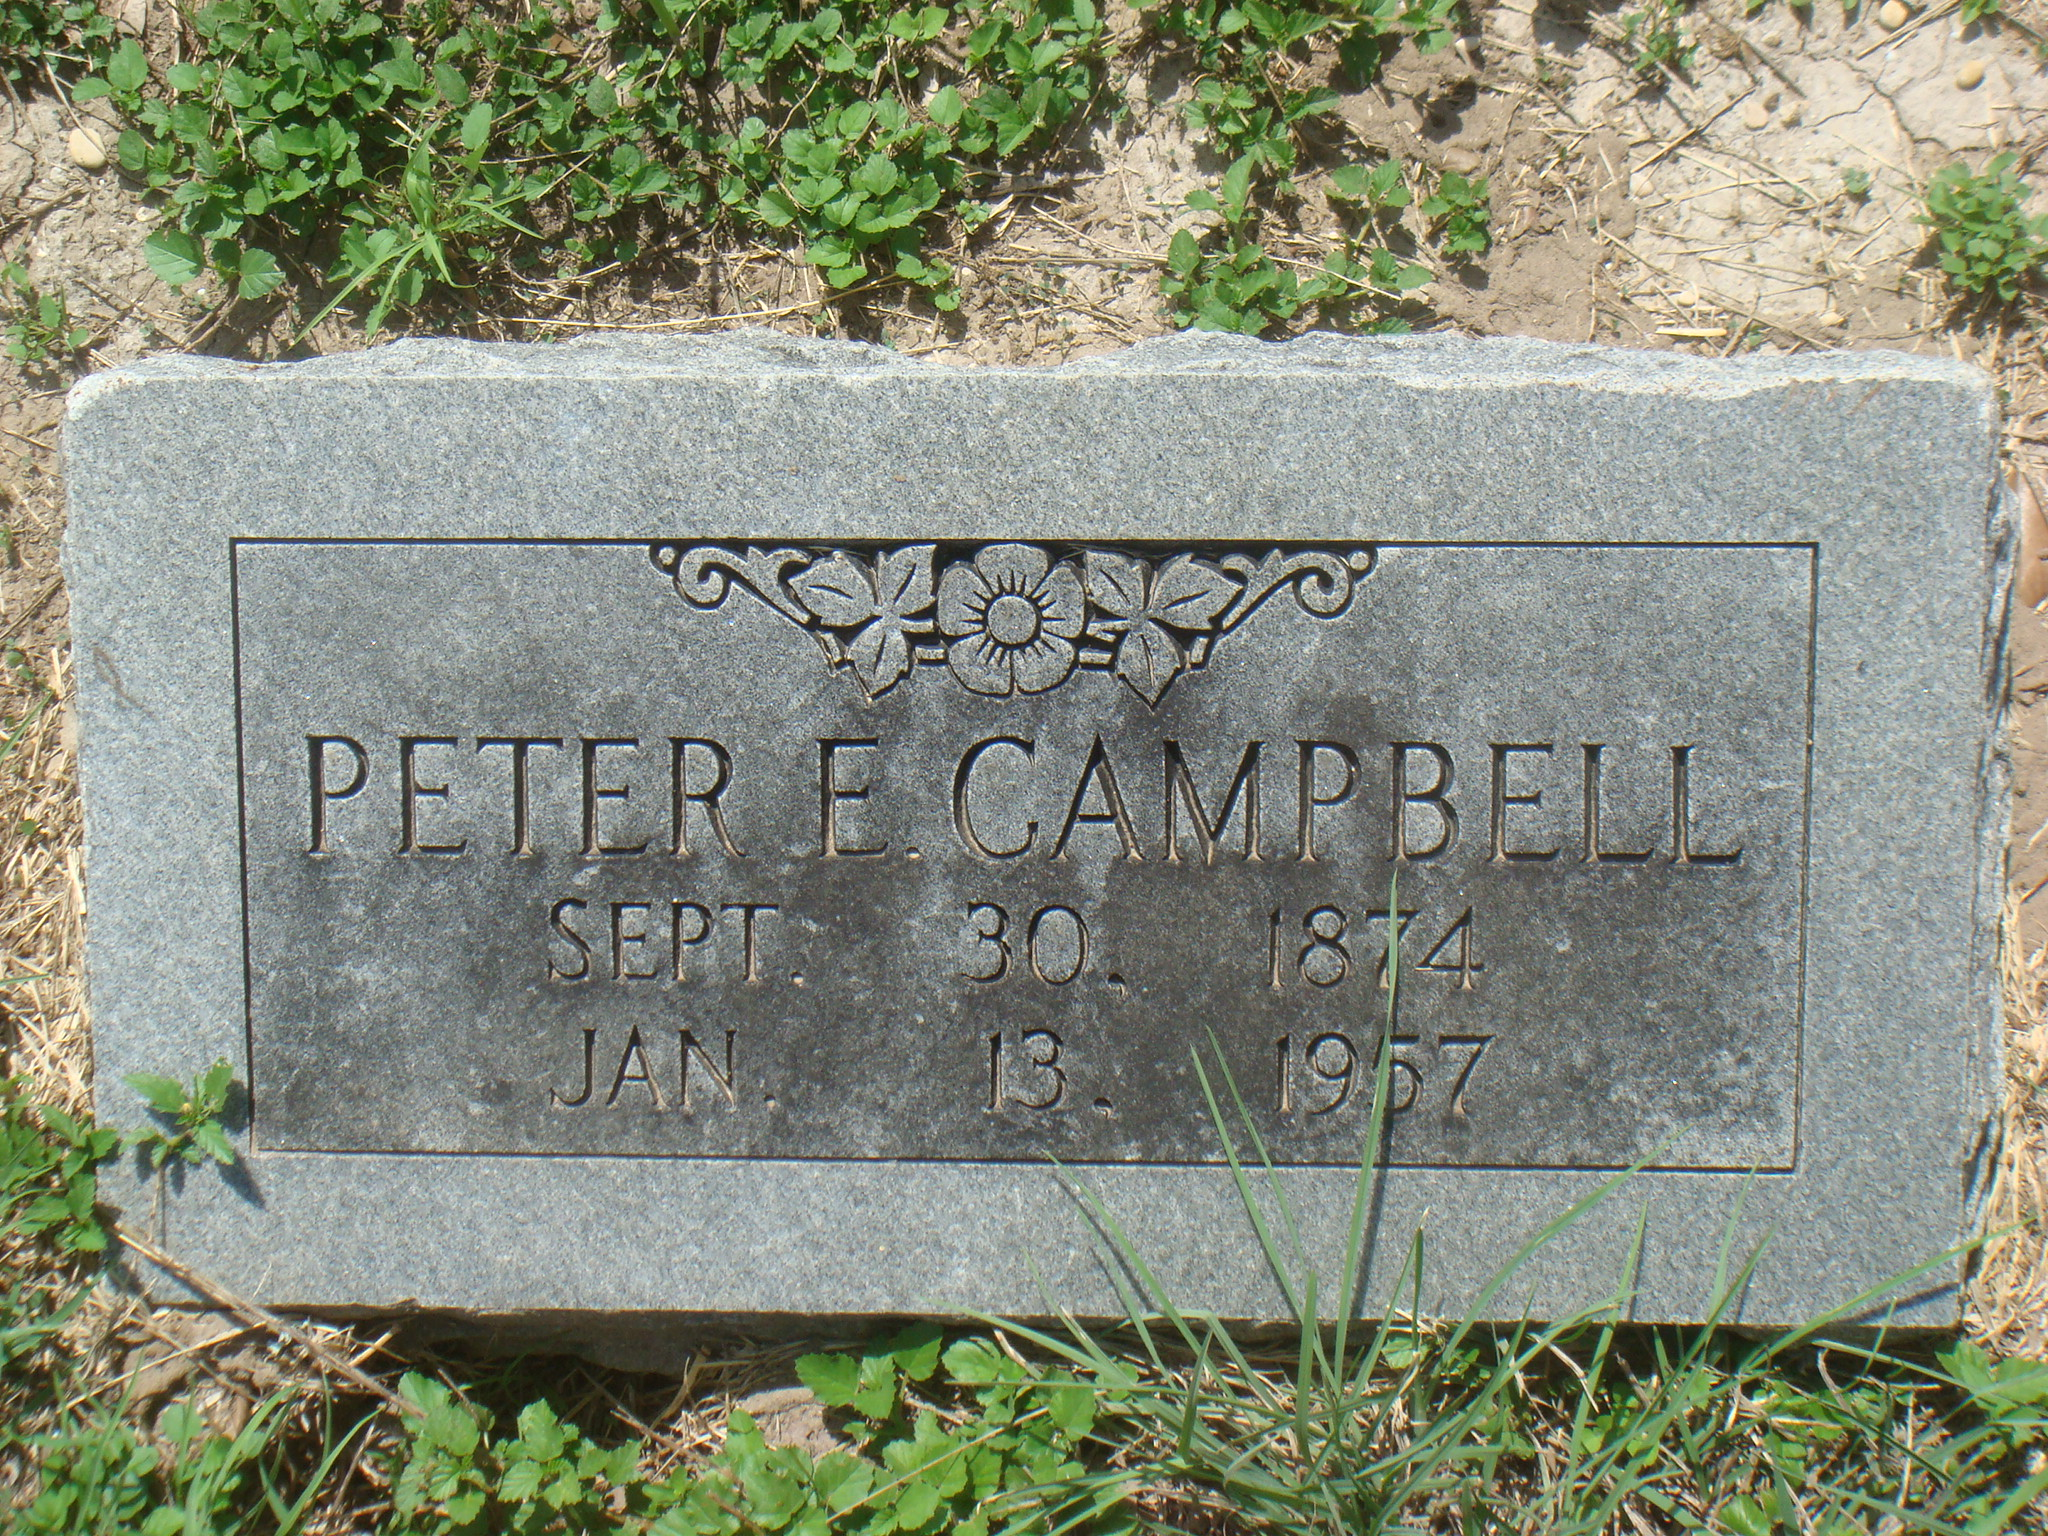 Peter E. Campbell